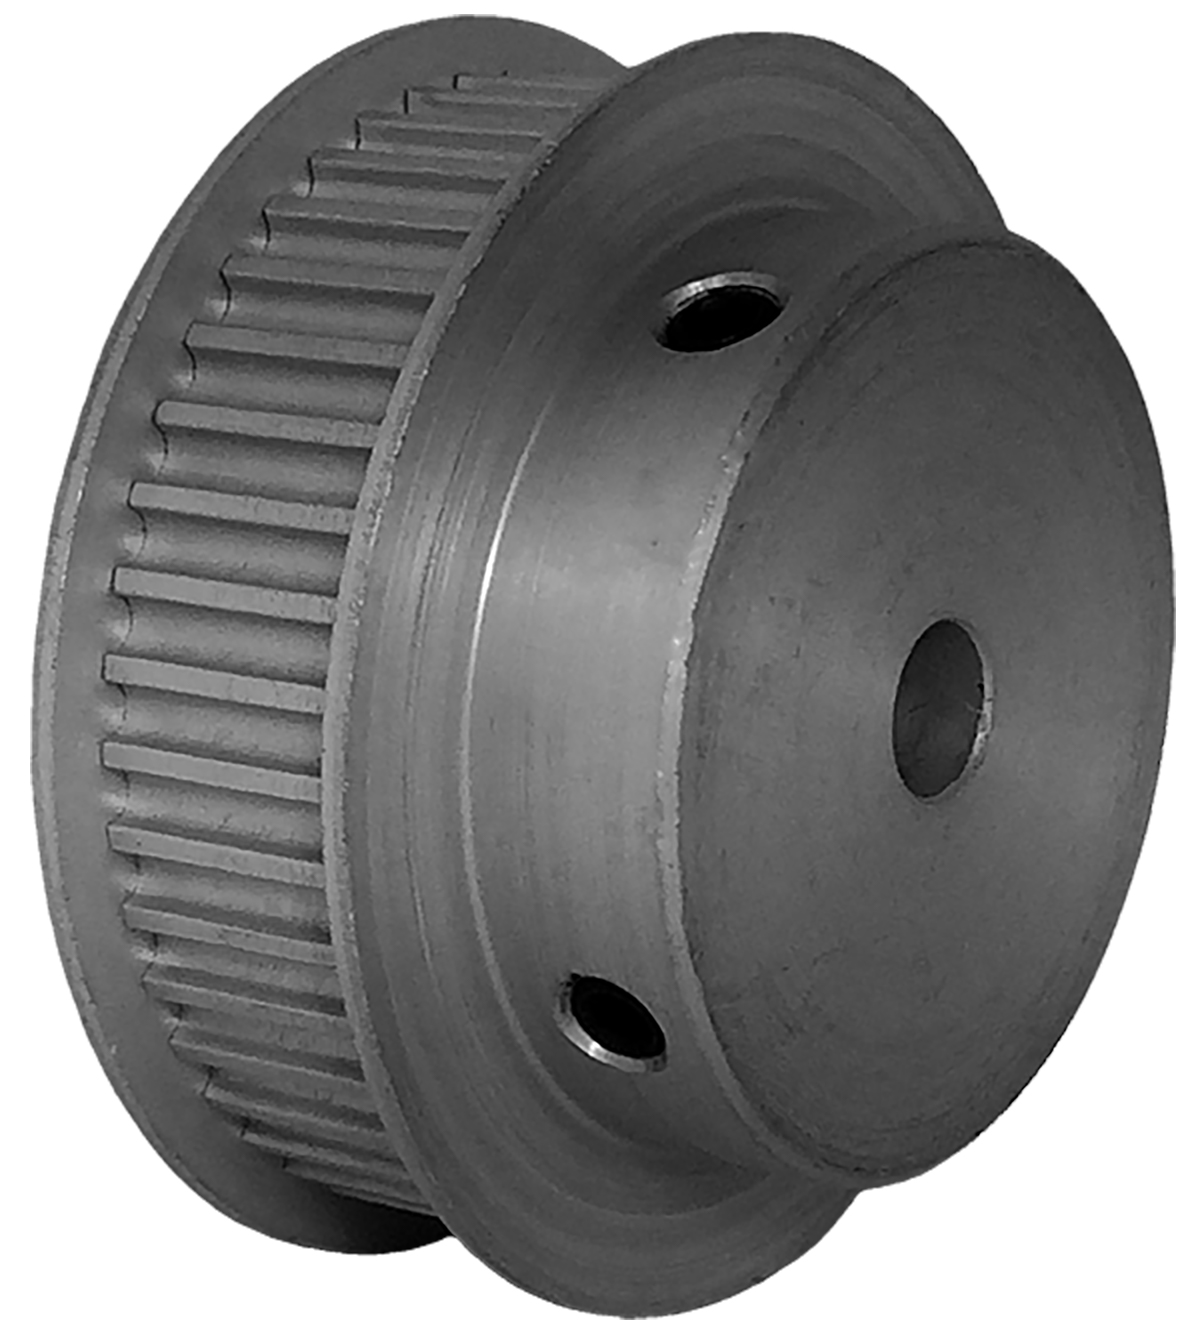 44-3M09M6FA6 - Aluminum Powerhouse®HTD® Pulleys